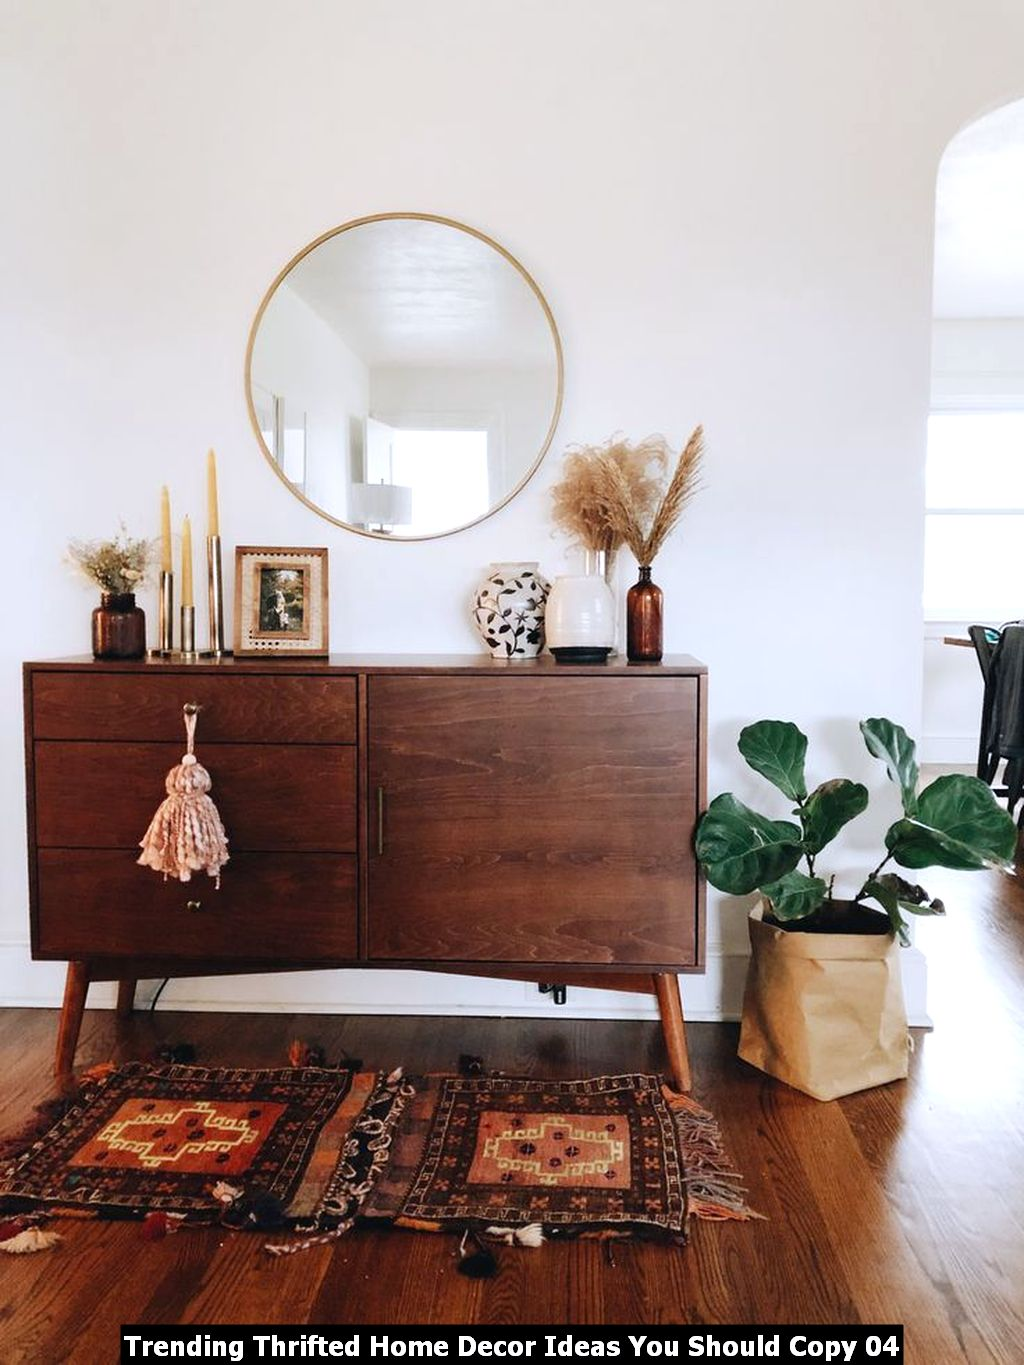 Trending Thrifted Home Decor Ideas You Should Copy 04